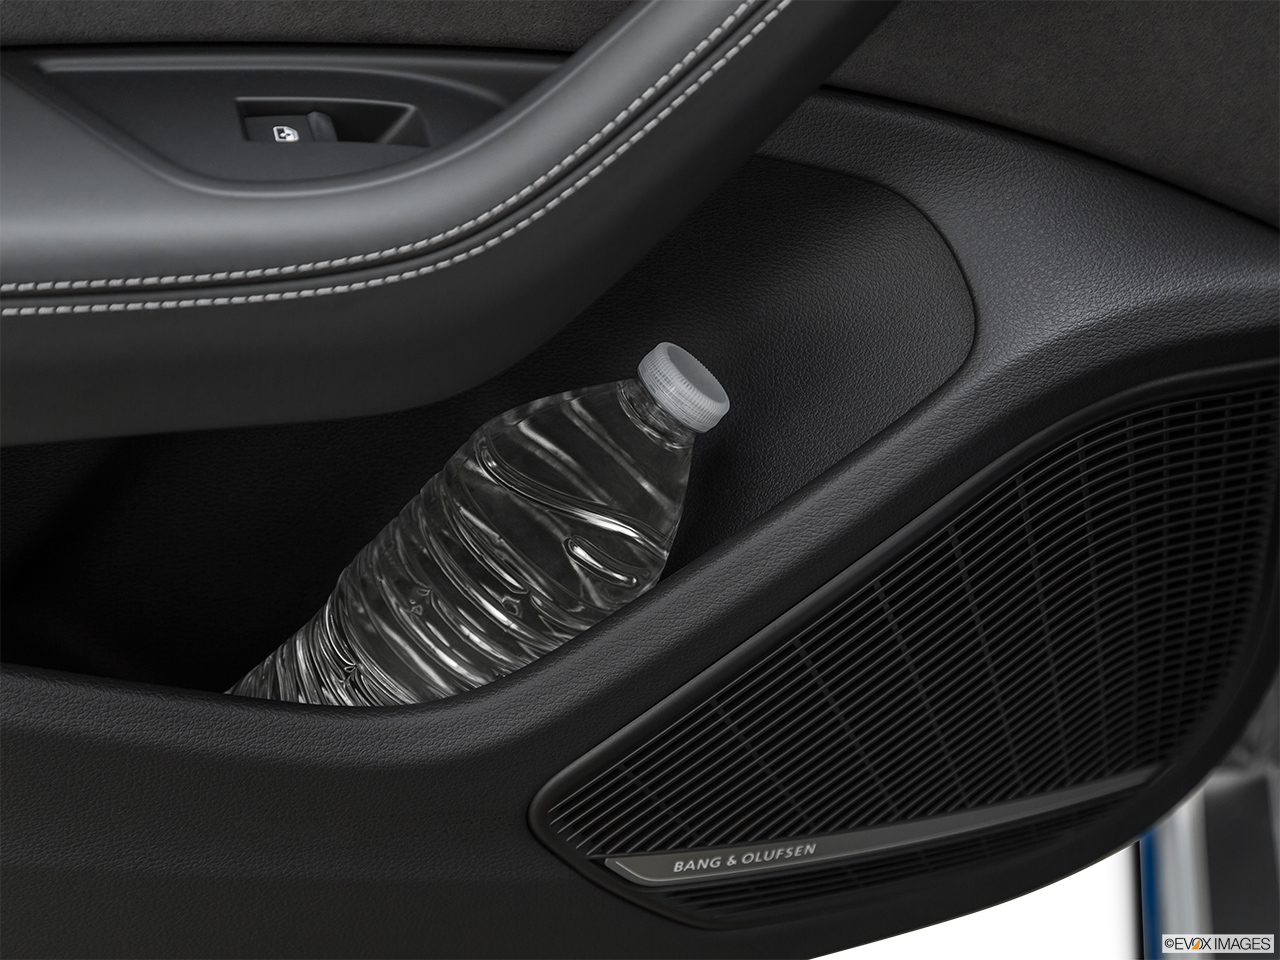 2019 Audi RS 5 Sportback 2.9 TFSI Second row side cup holder with coffee prop, or second row door cup holder with water bottle.